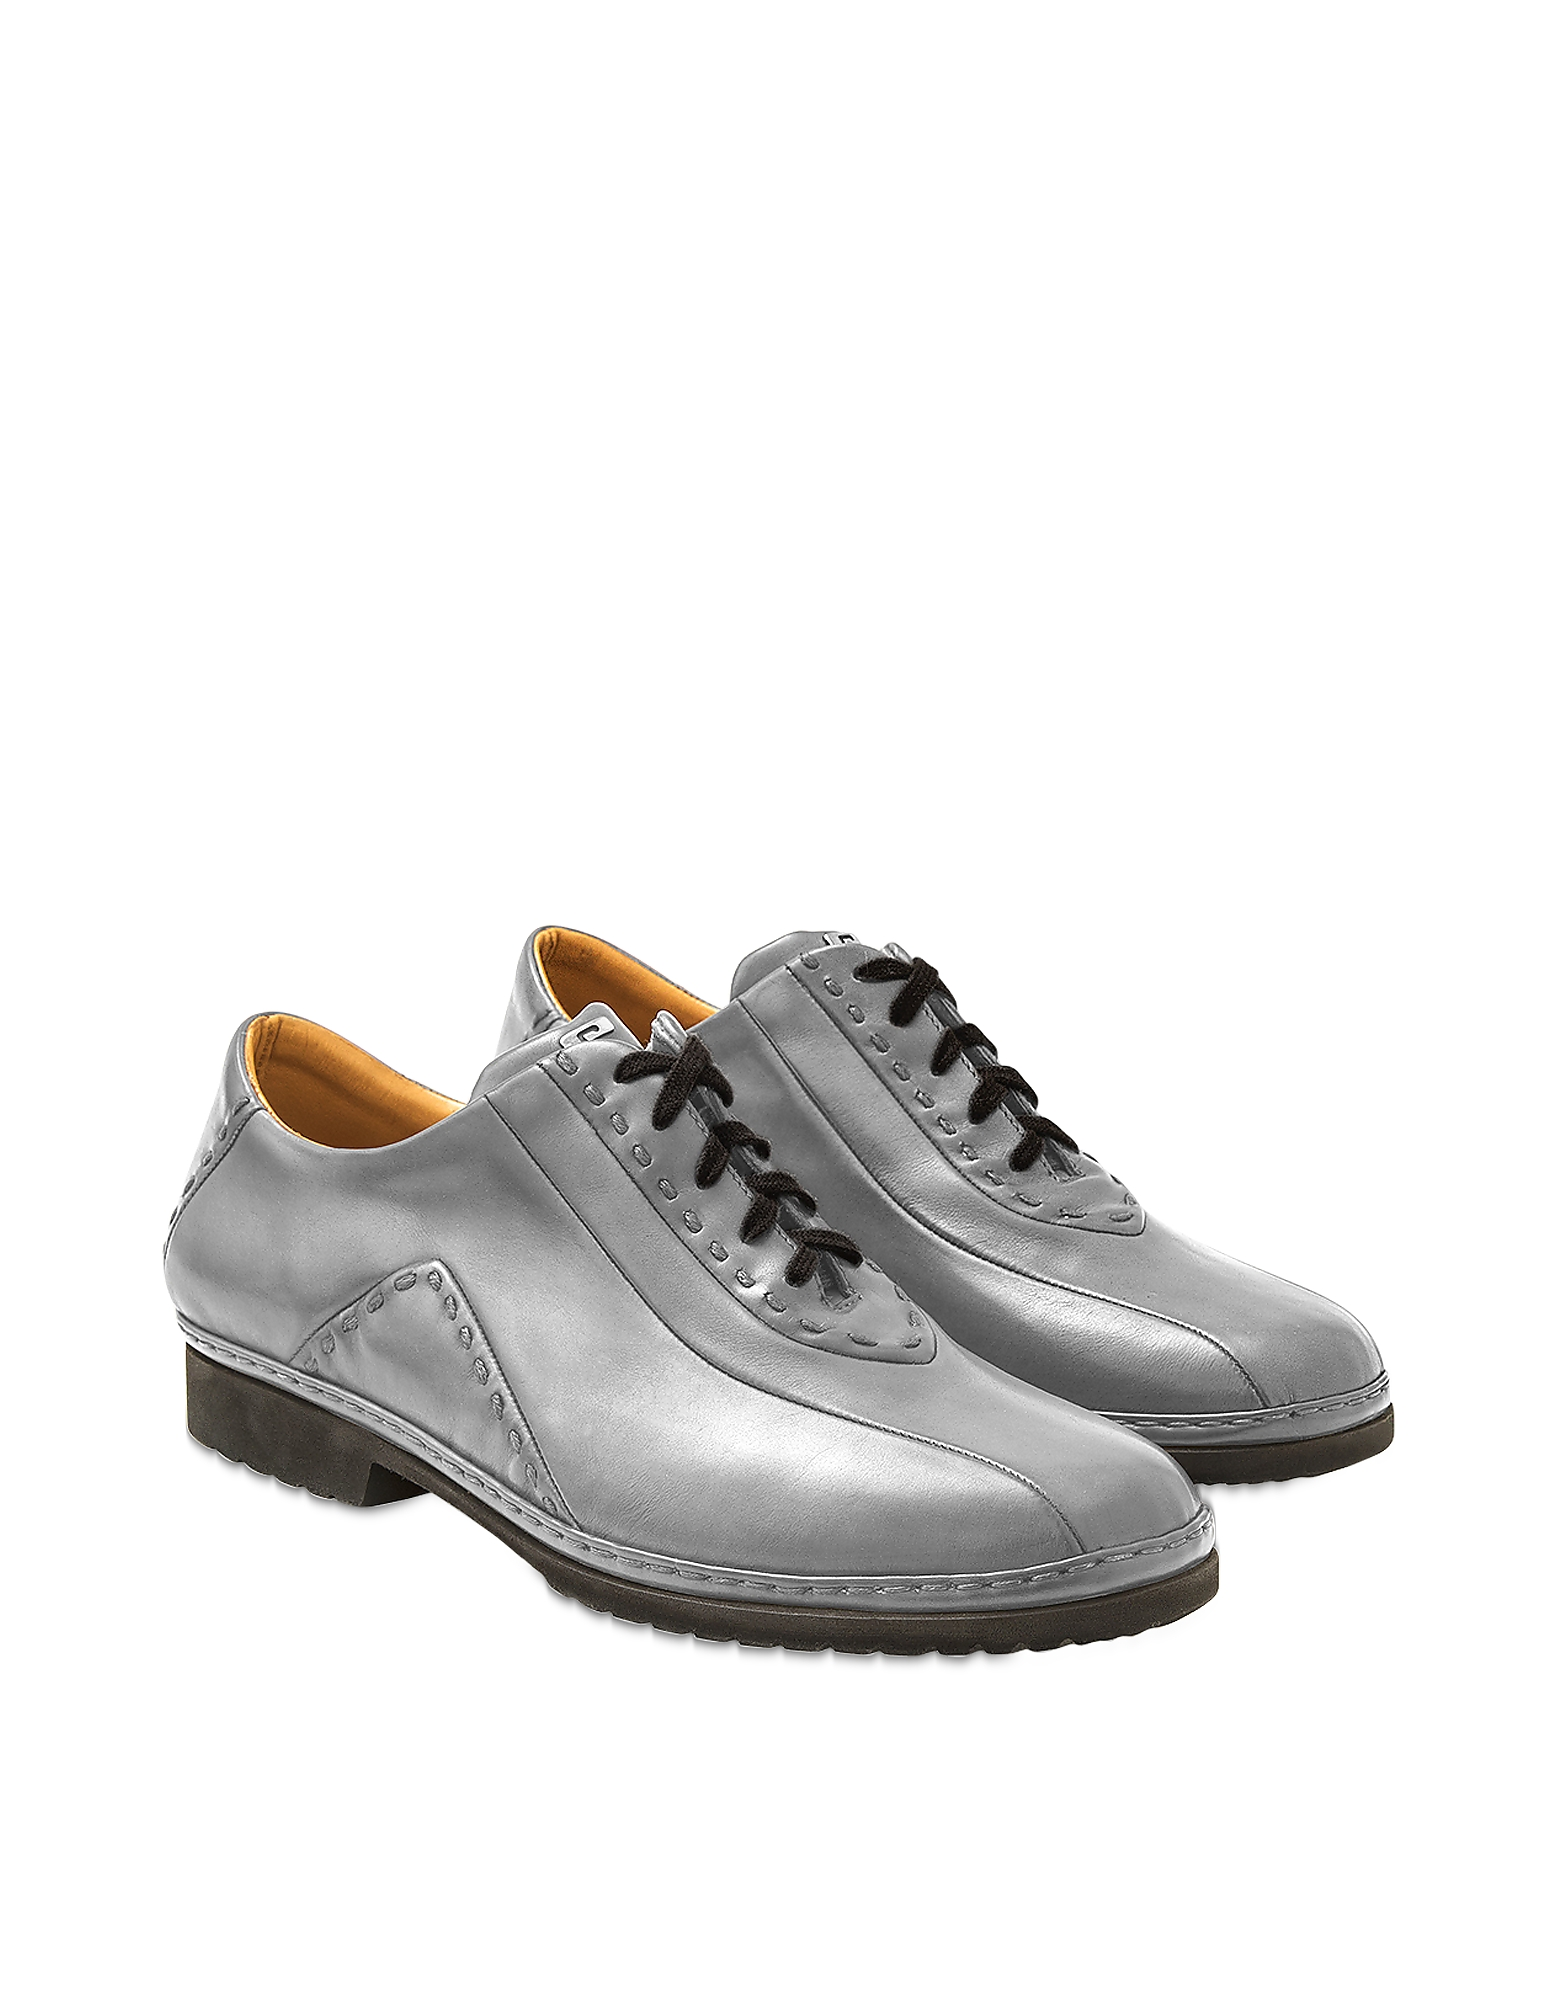 Gray Italian Hand Made Leather Lace-up Shoes